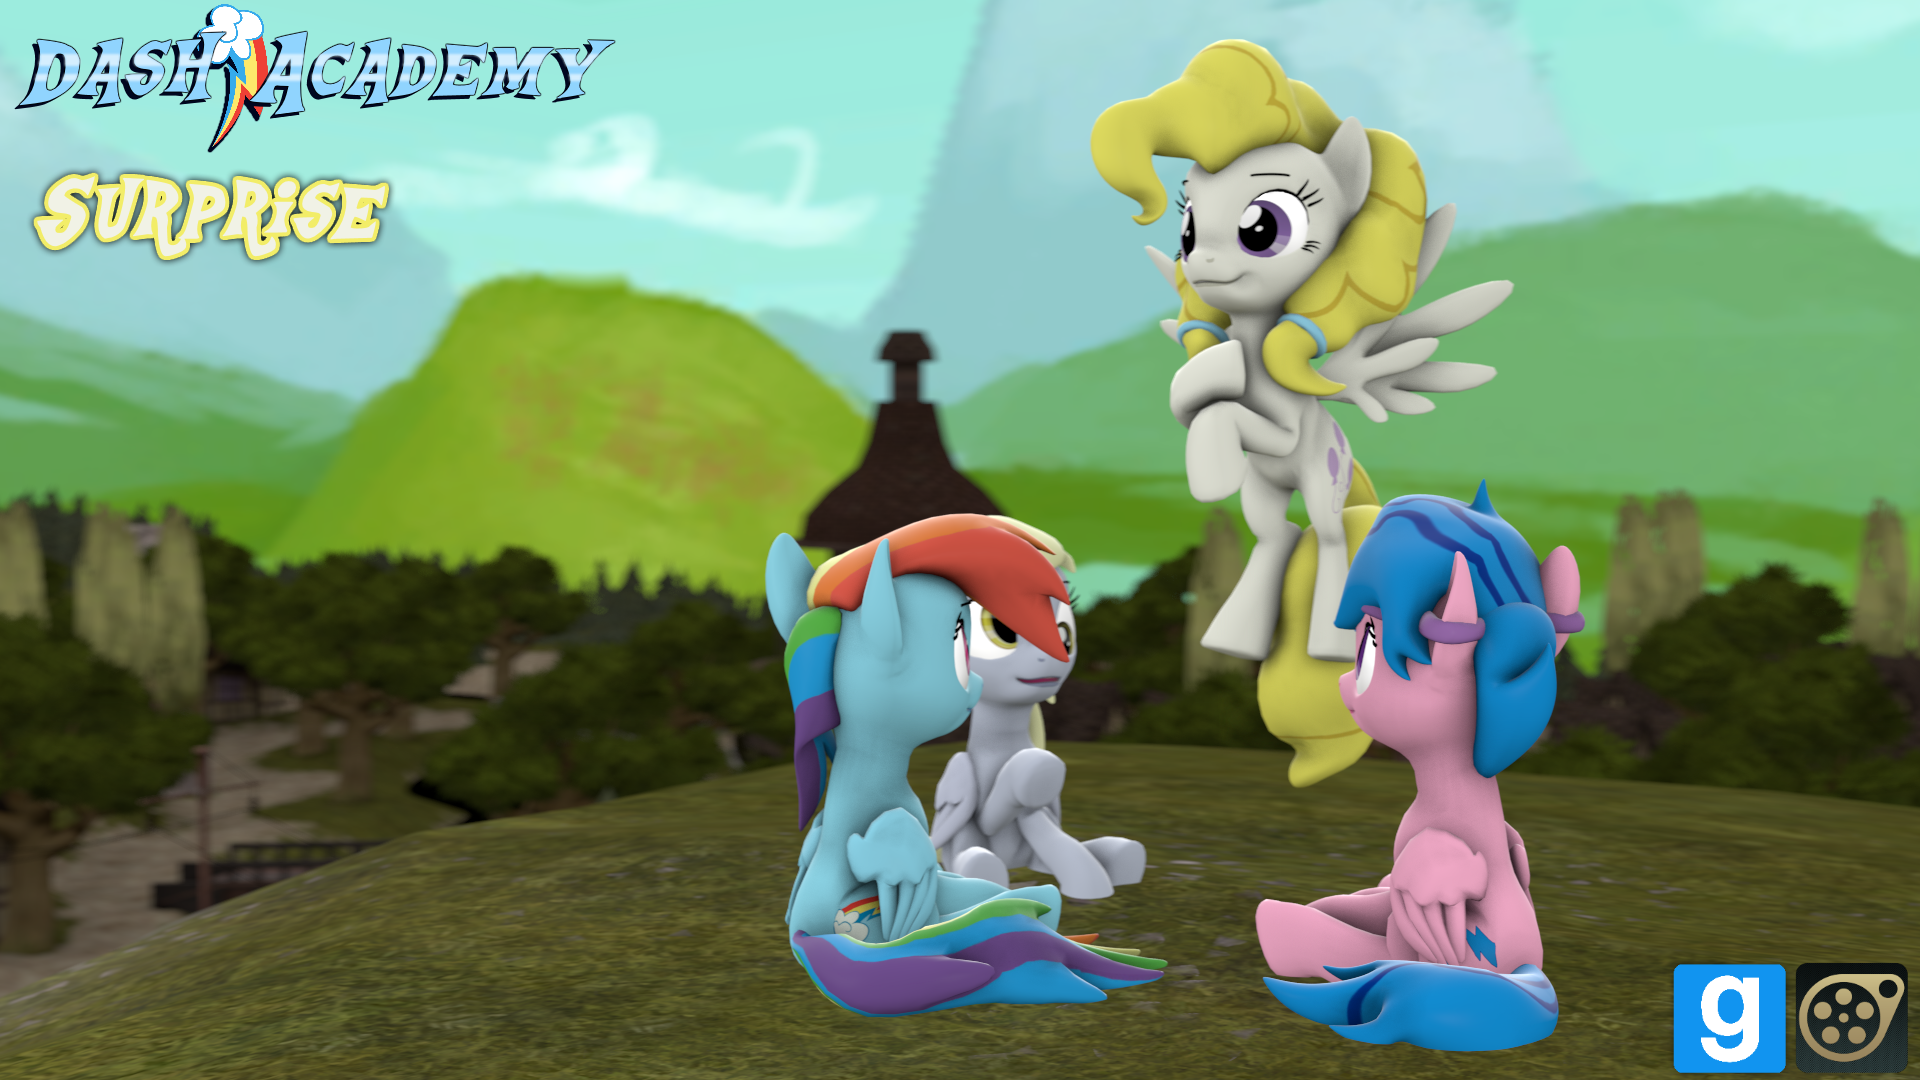 [DL] Surprise [Dash Academy] by MythicSpeed